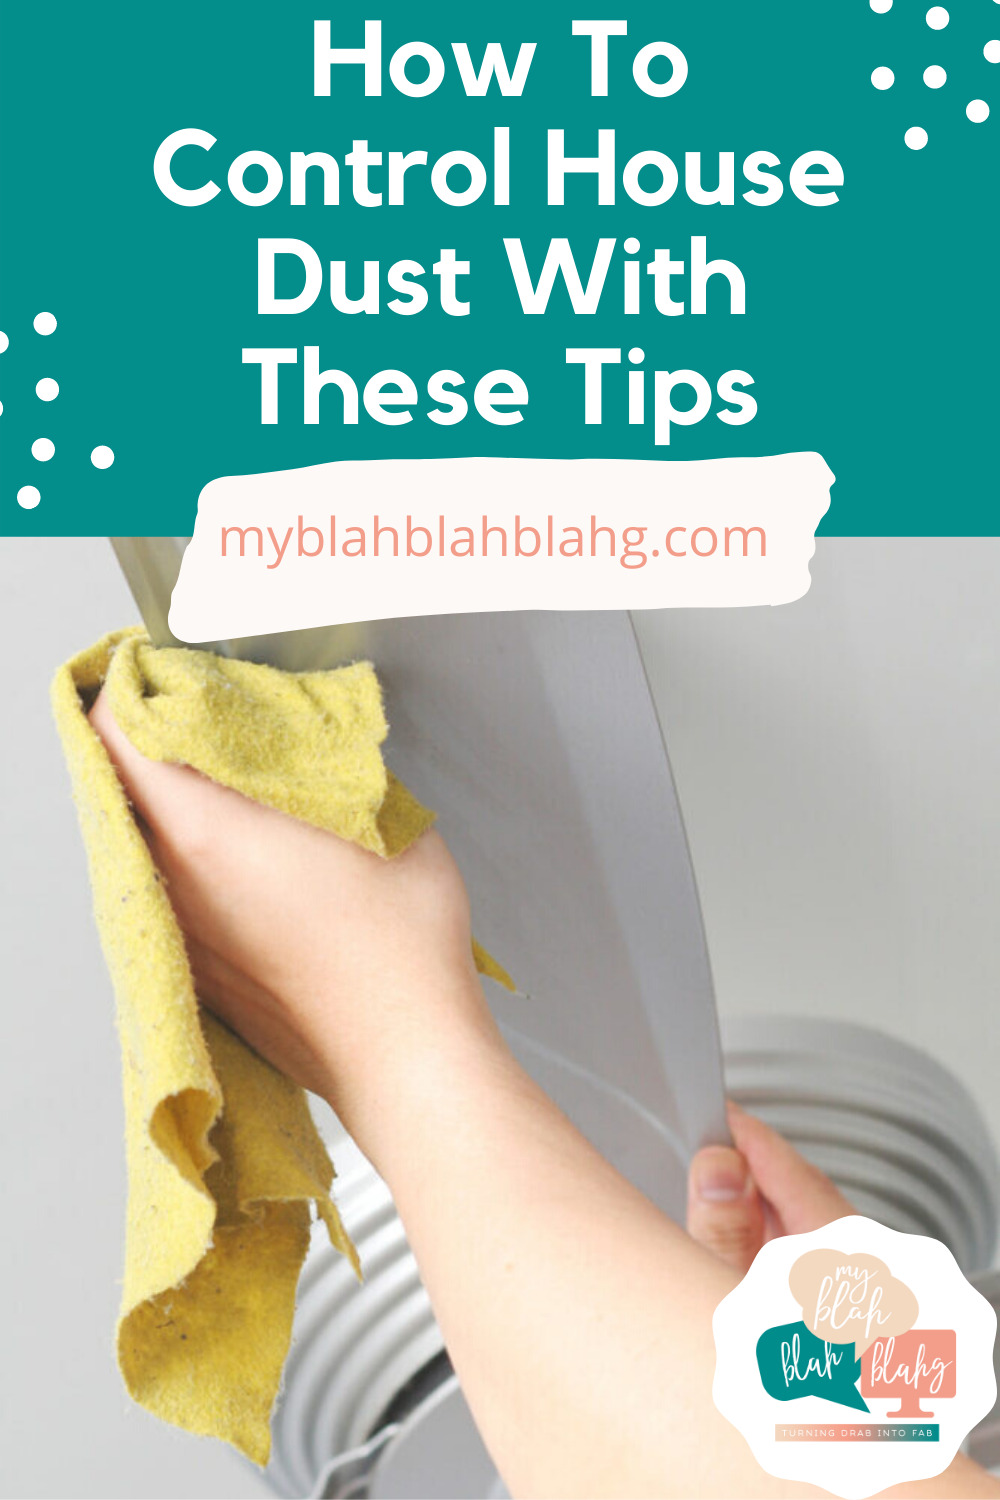 Don't let the dustballs chase your every step. By using some of these tips and tricks, you can control the dust instead of letting it control you! #MyBlahBlahBlahg #ControllingHouseDust #CleaningTipsandTricks #DustingTipsAndTricks